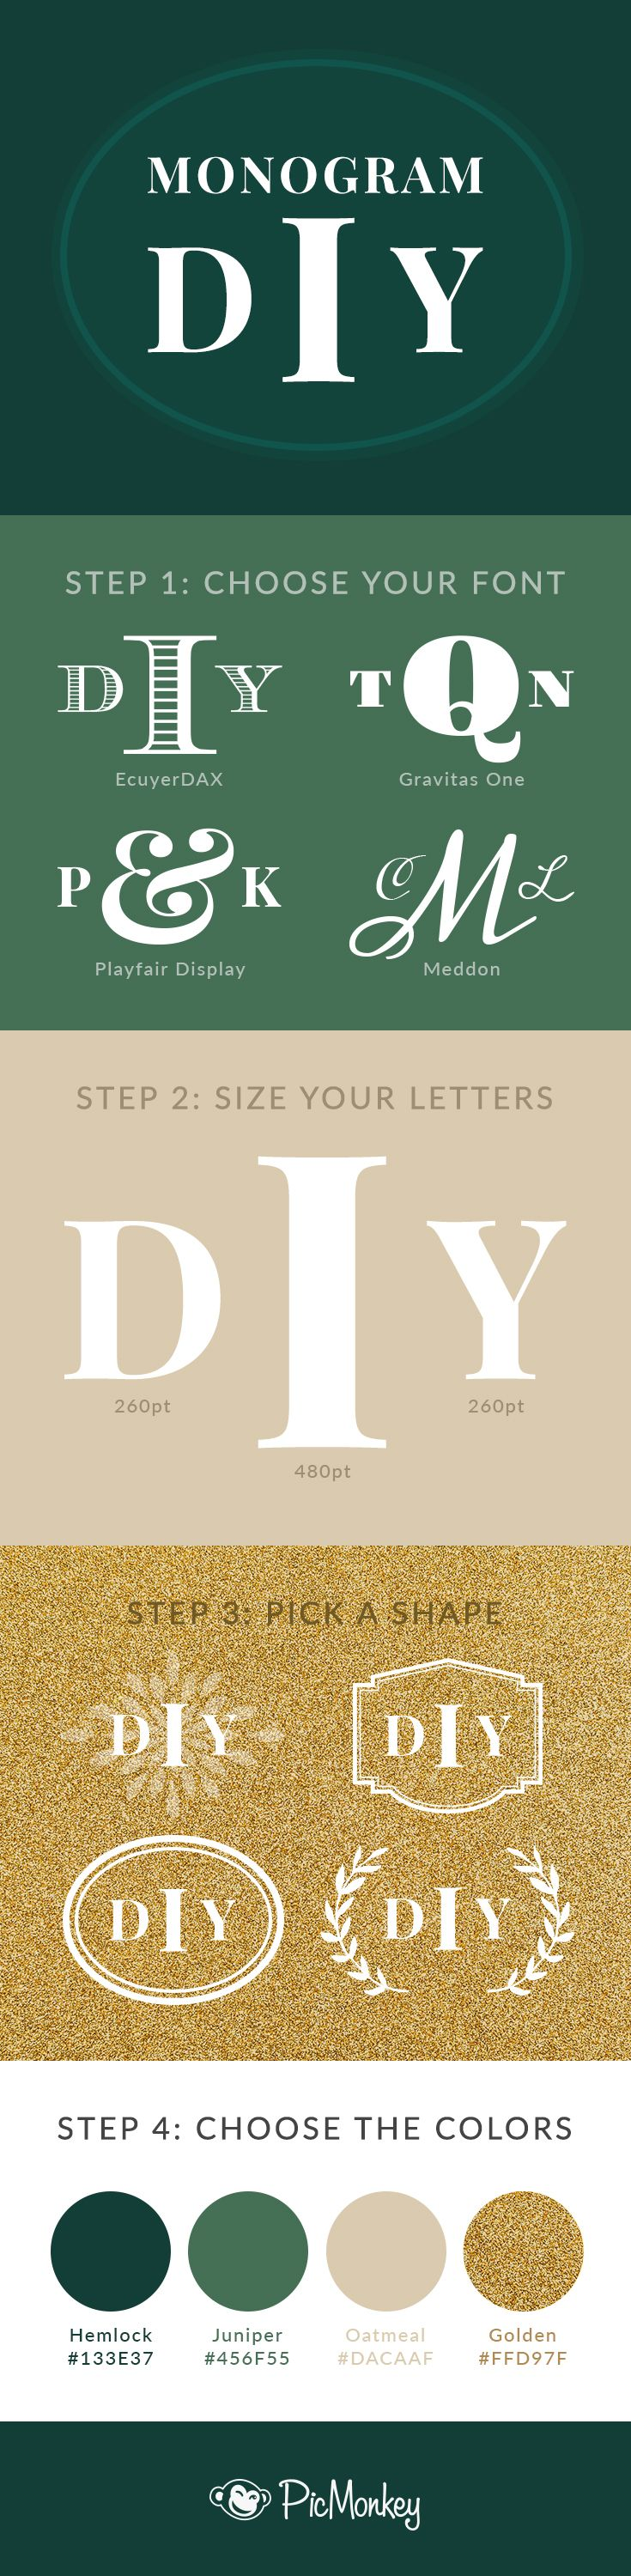 Learn how to craft a DIY monogram in just three easy steps. Monograms are a great way to personalize paper ephemera — thank you cards, wedding table numbers, place cards, and programs!